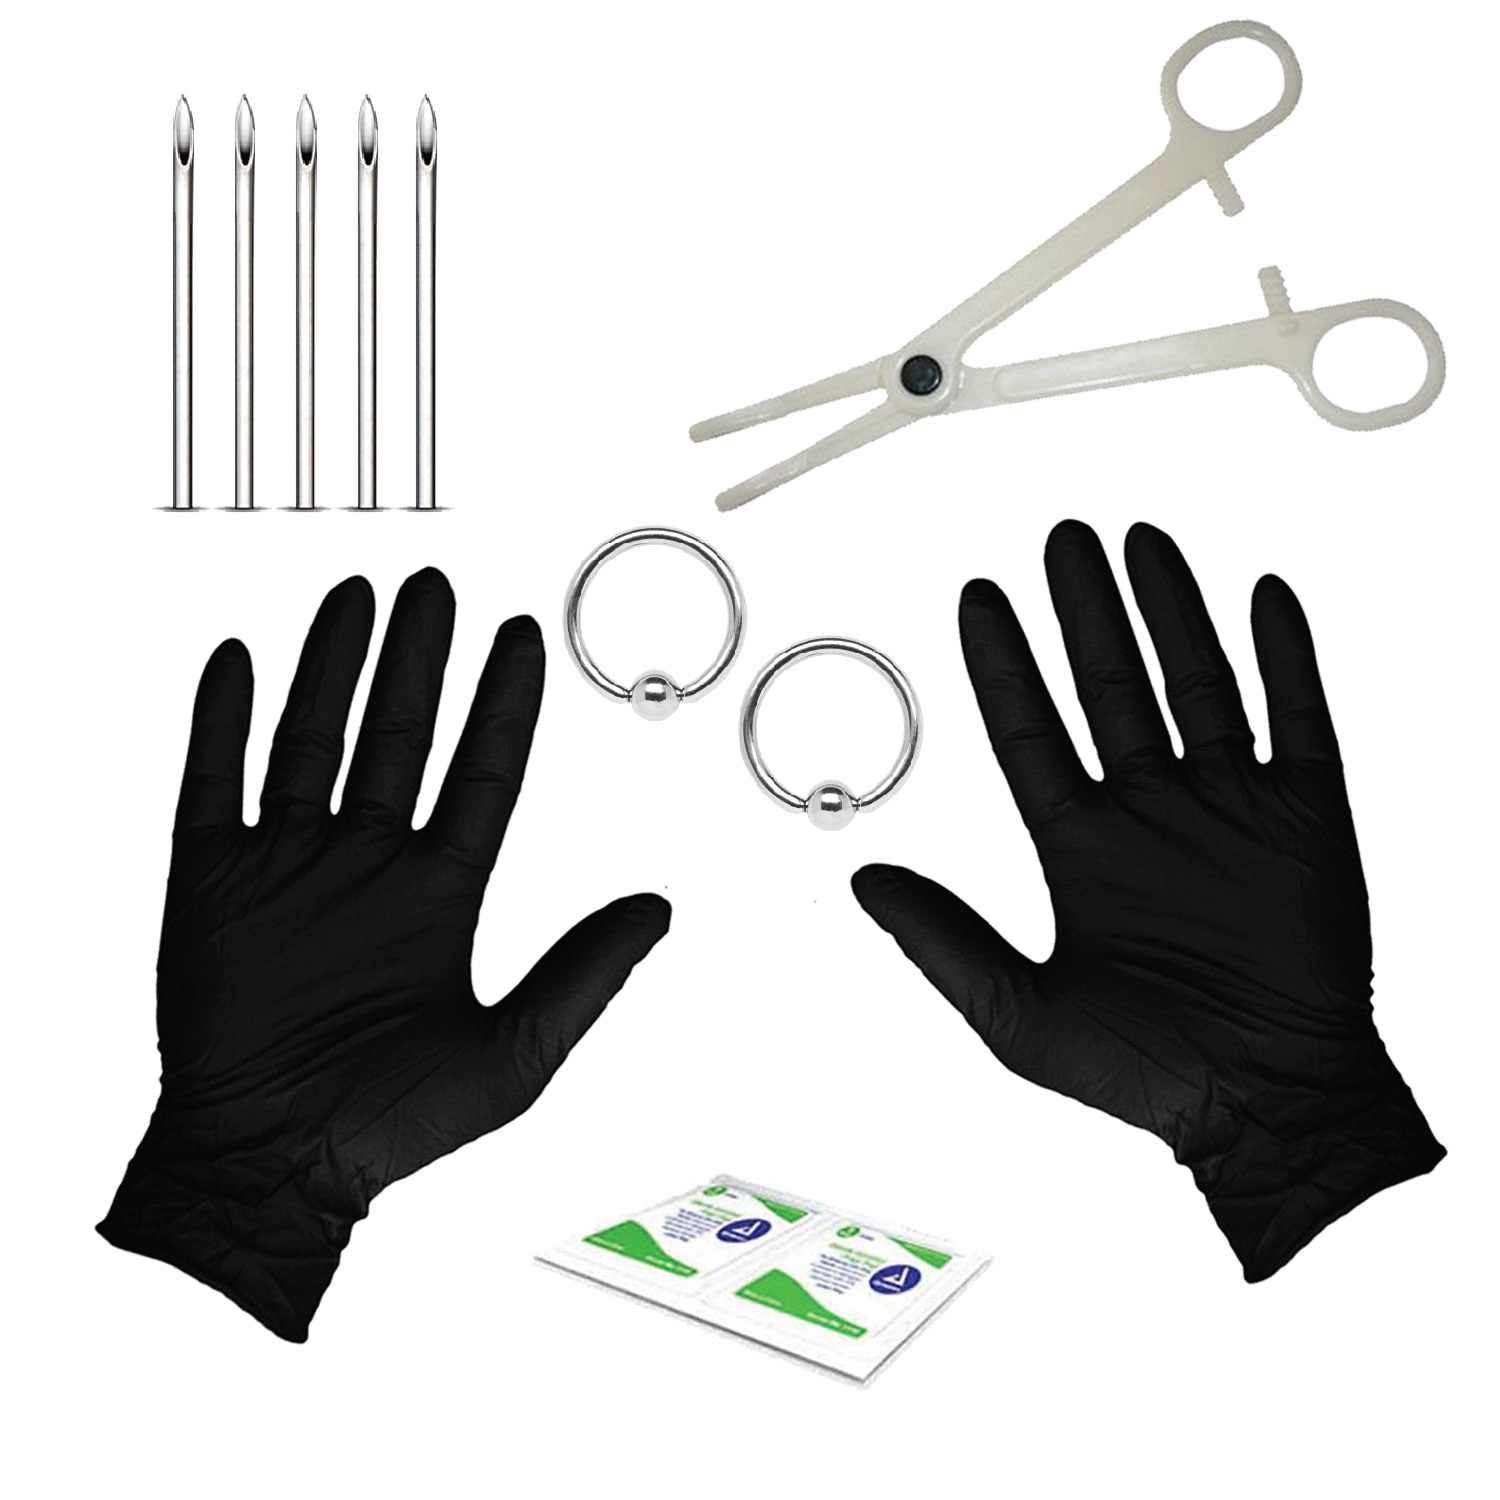 BodyJ4You 10PC Professional Piercing Kit BCR Belly Nipple Lip Nose 14G Steel Body Jewelry